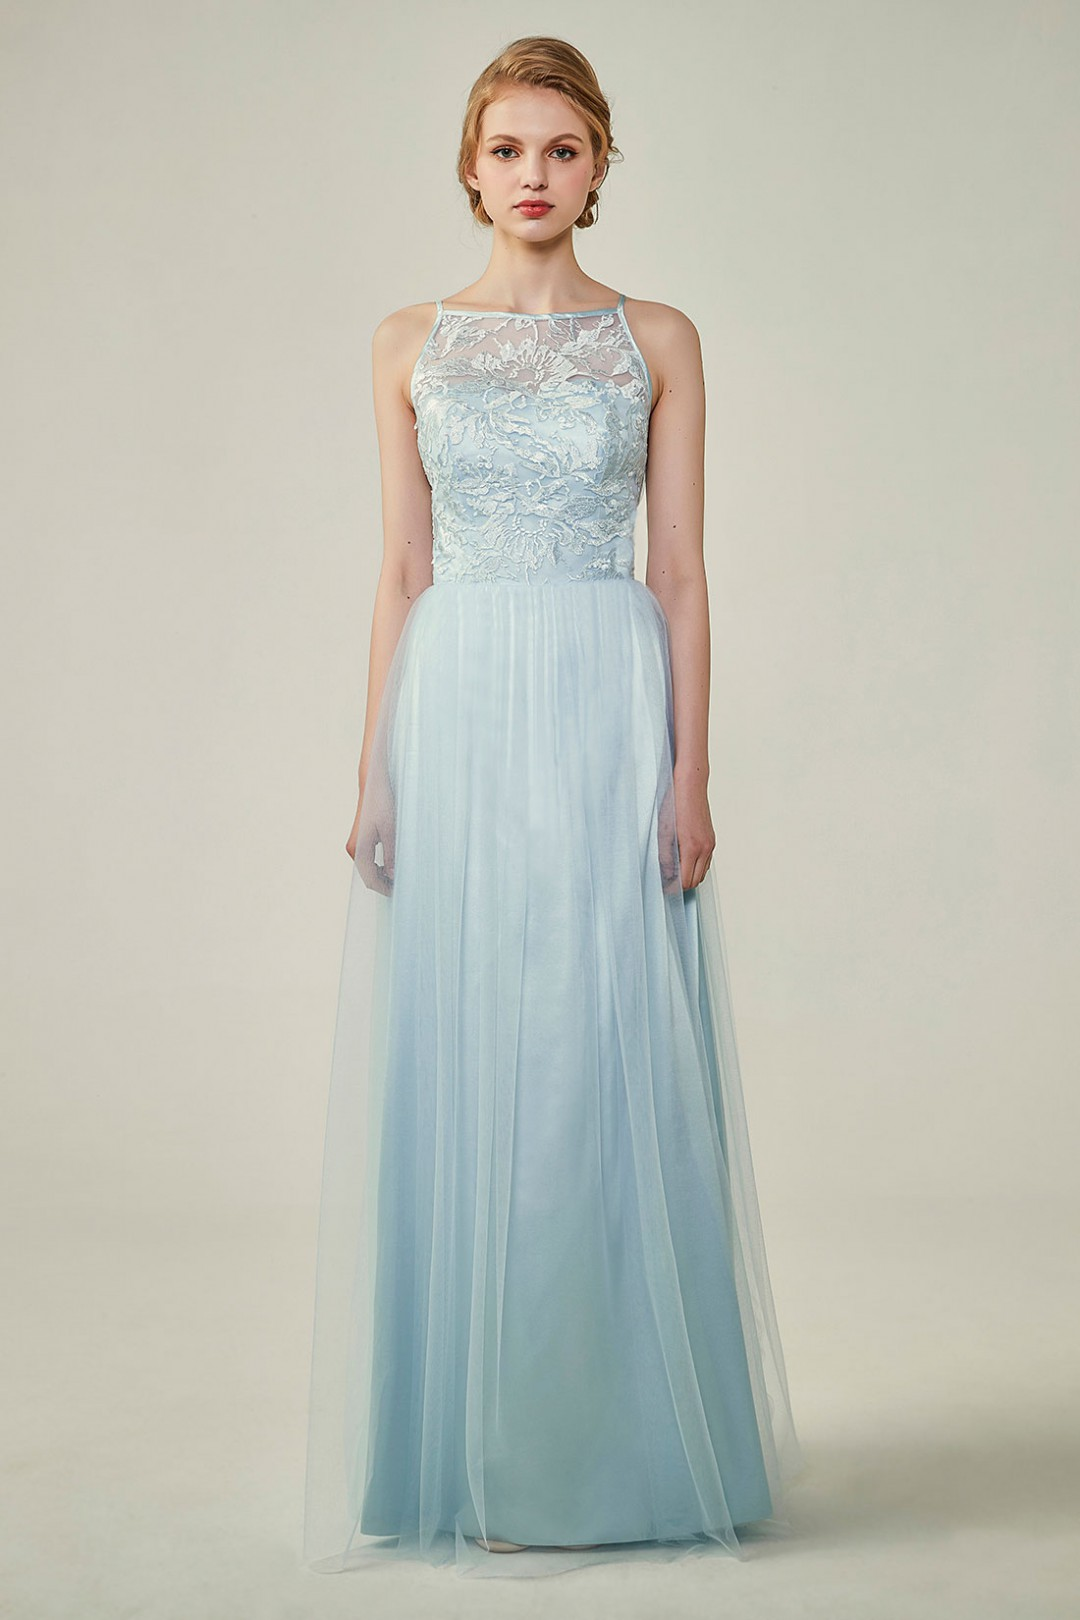 Tulle Lace Illusion Boat Neck and Back Bridesmaid Dress